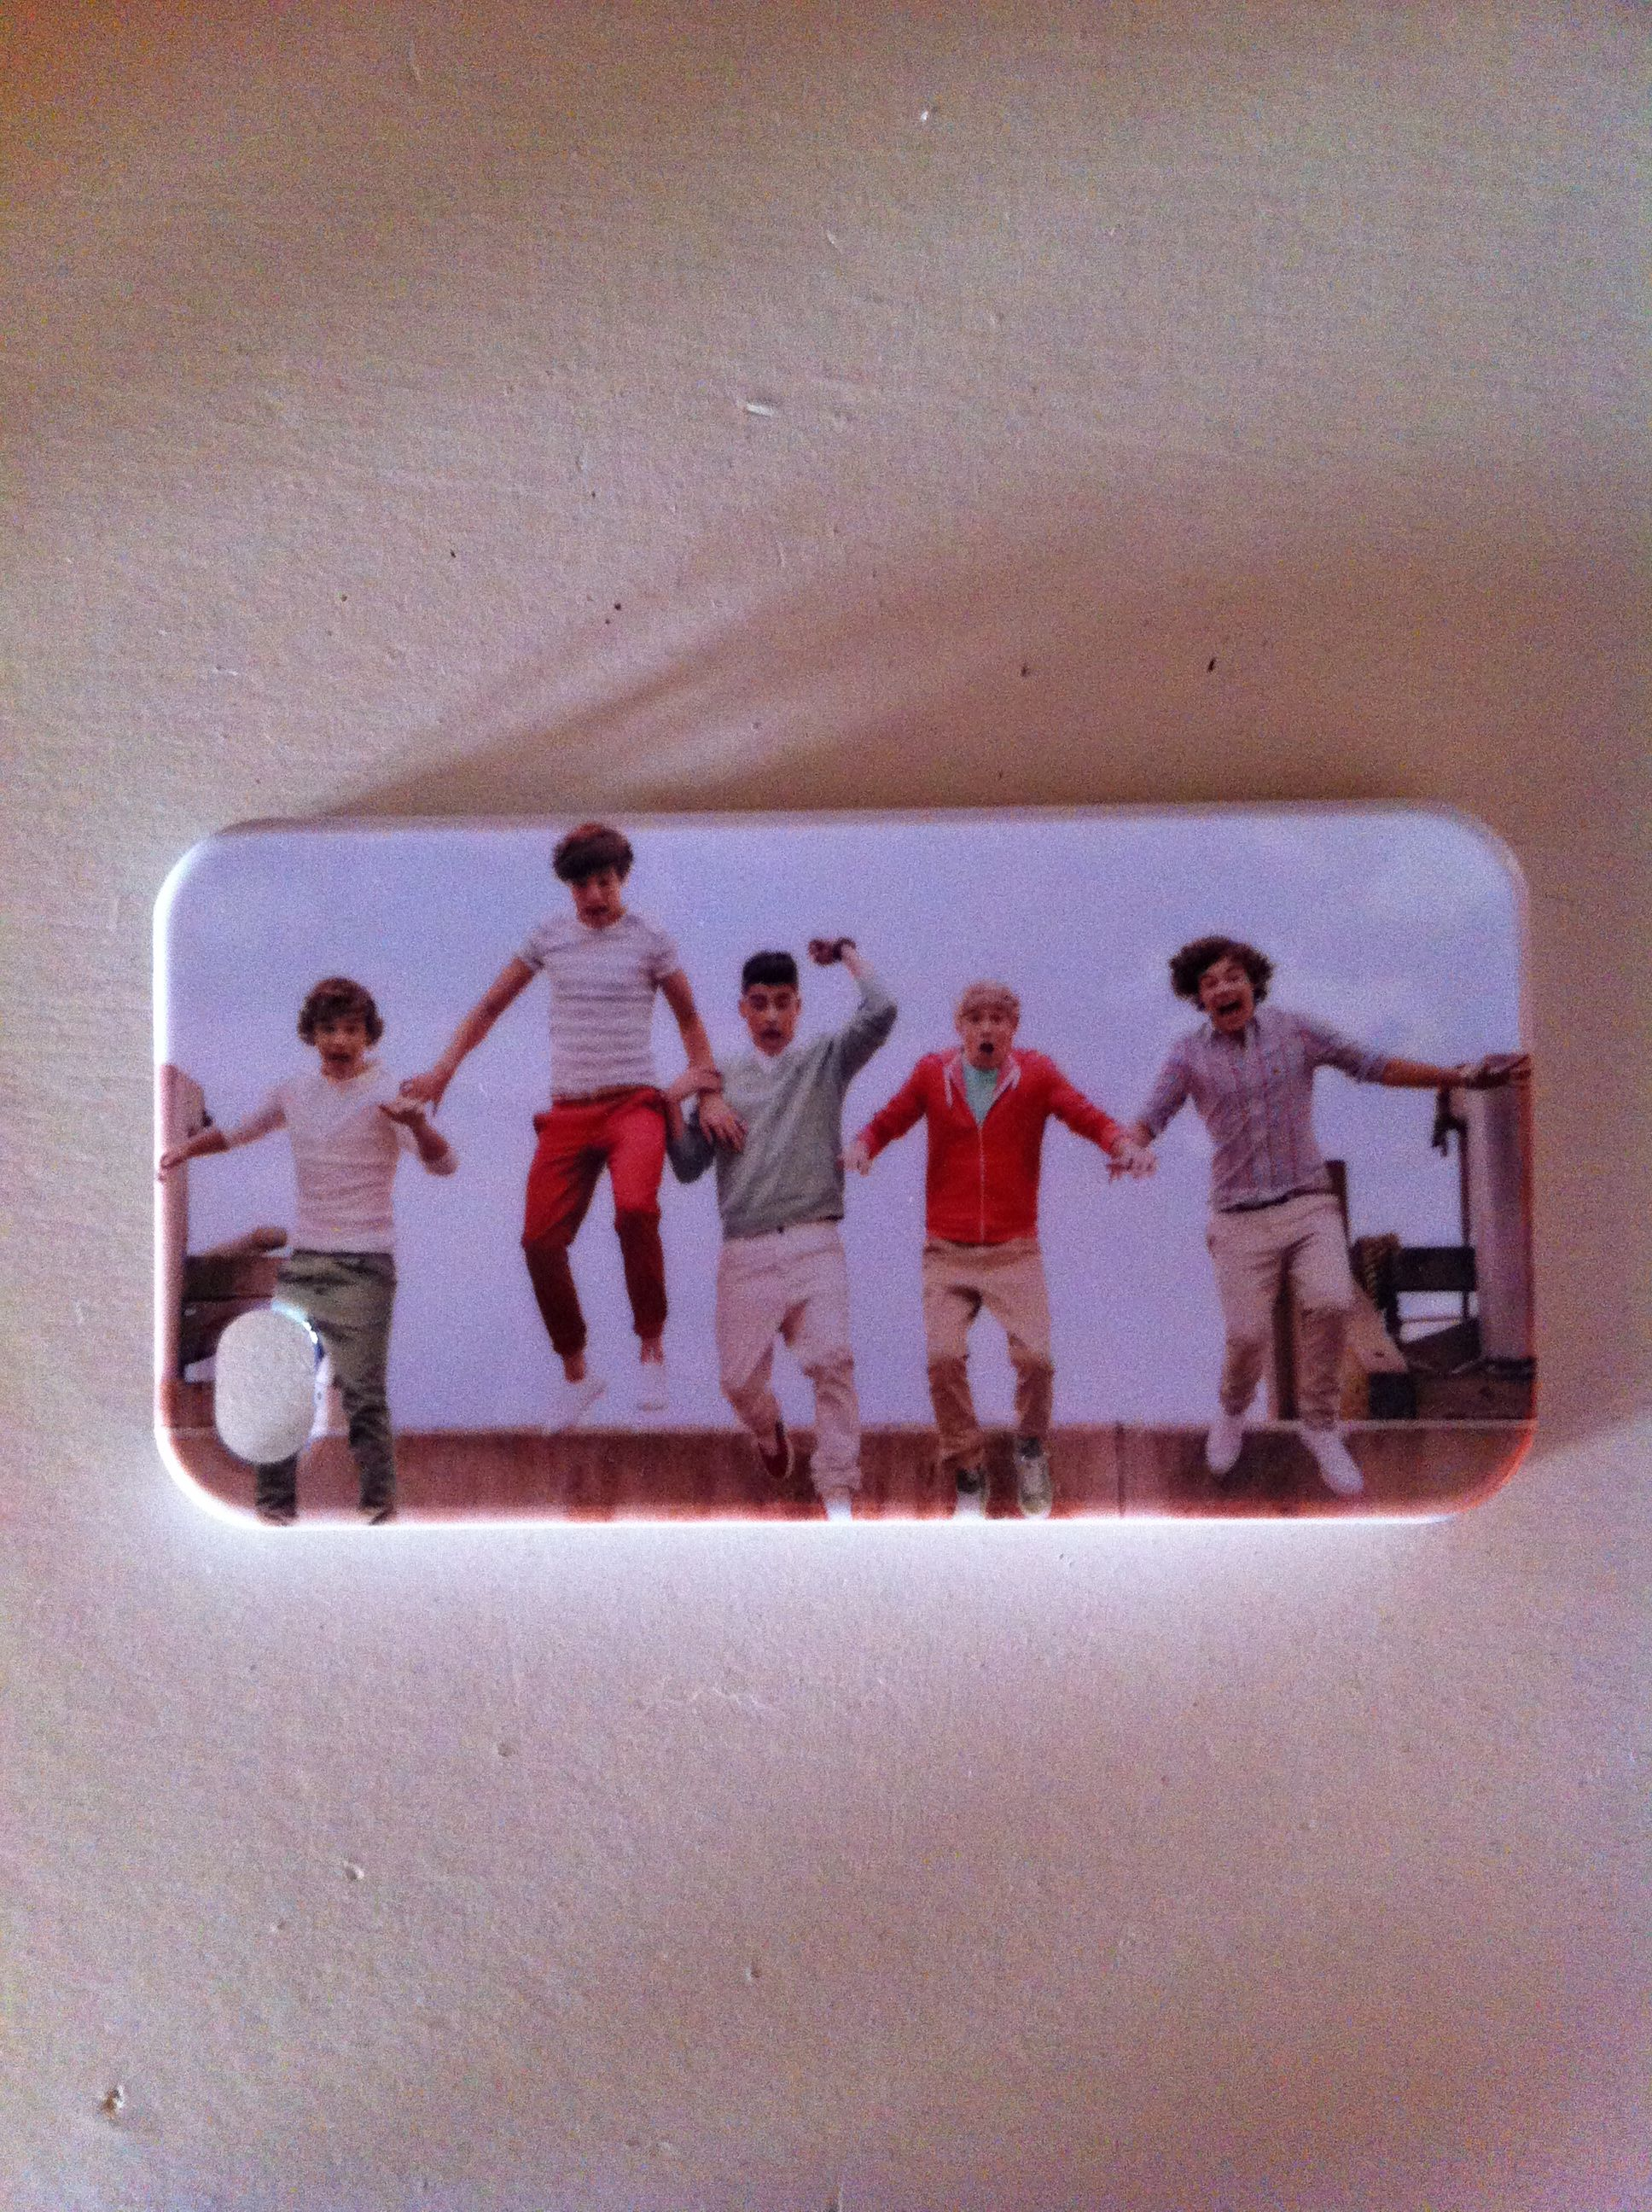 My one direction phone case!!!!